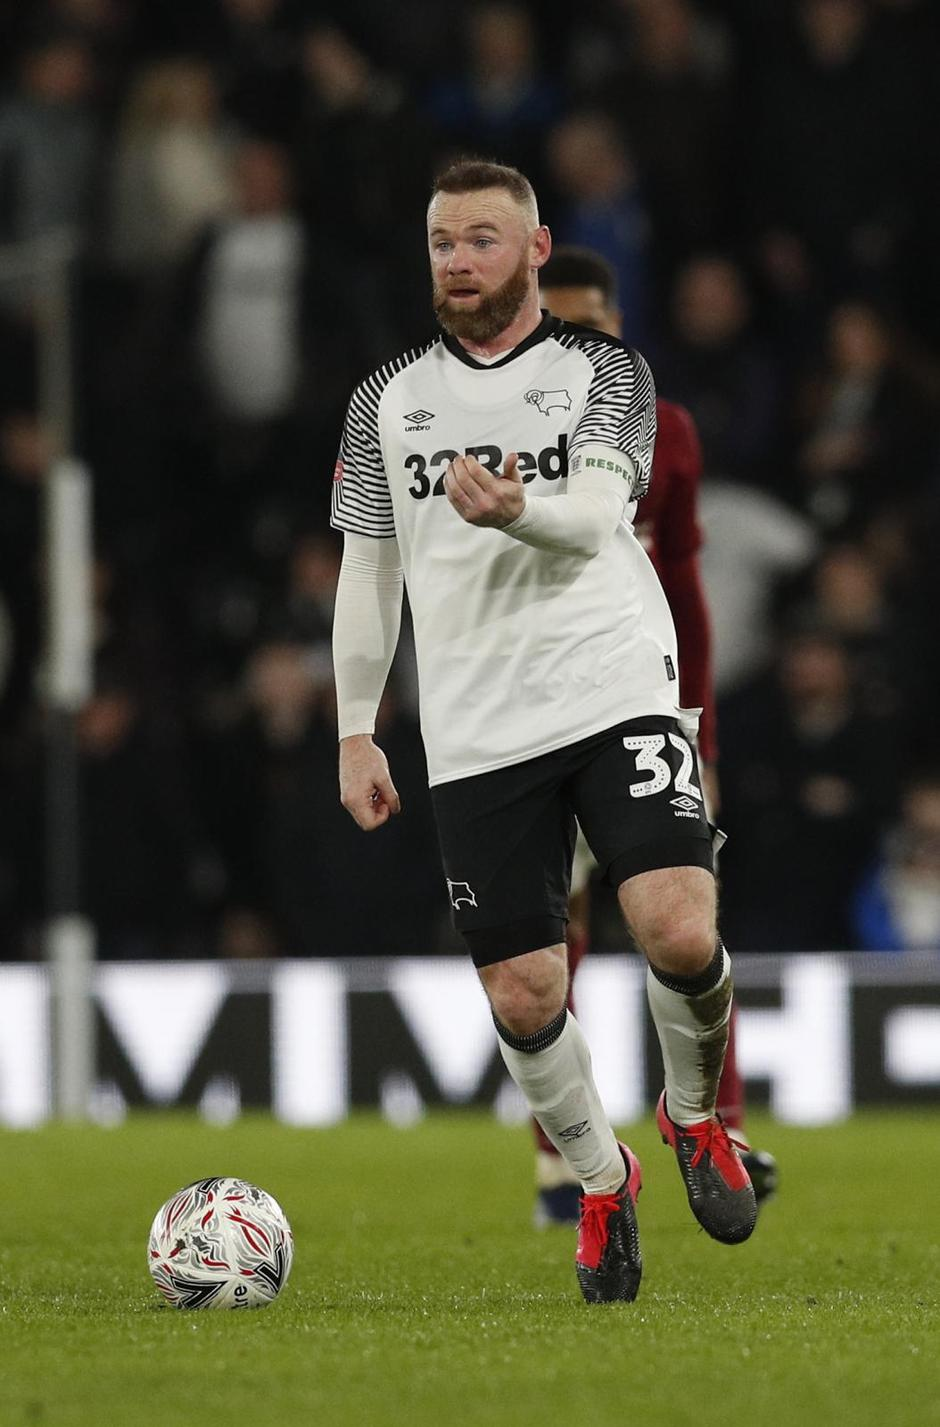 Derby County v Northampton Town - FA Cup - Fourth Round - Replay - Pride Park | Autor: Darren Staples/PA Images/PIXSELL